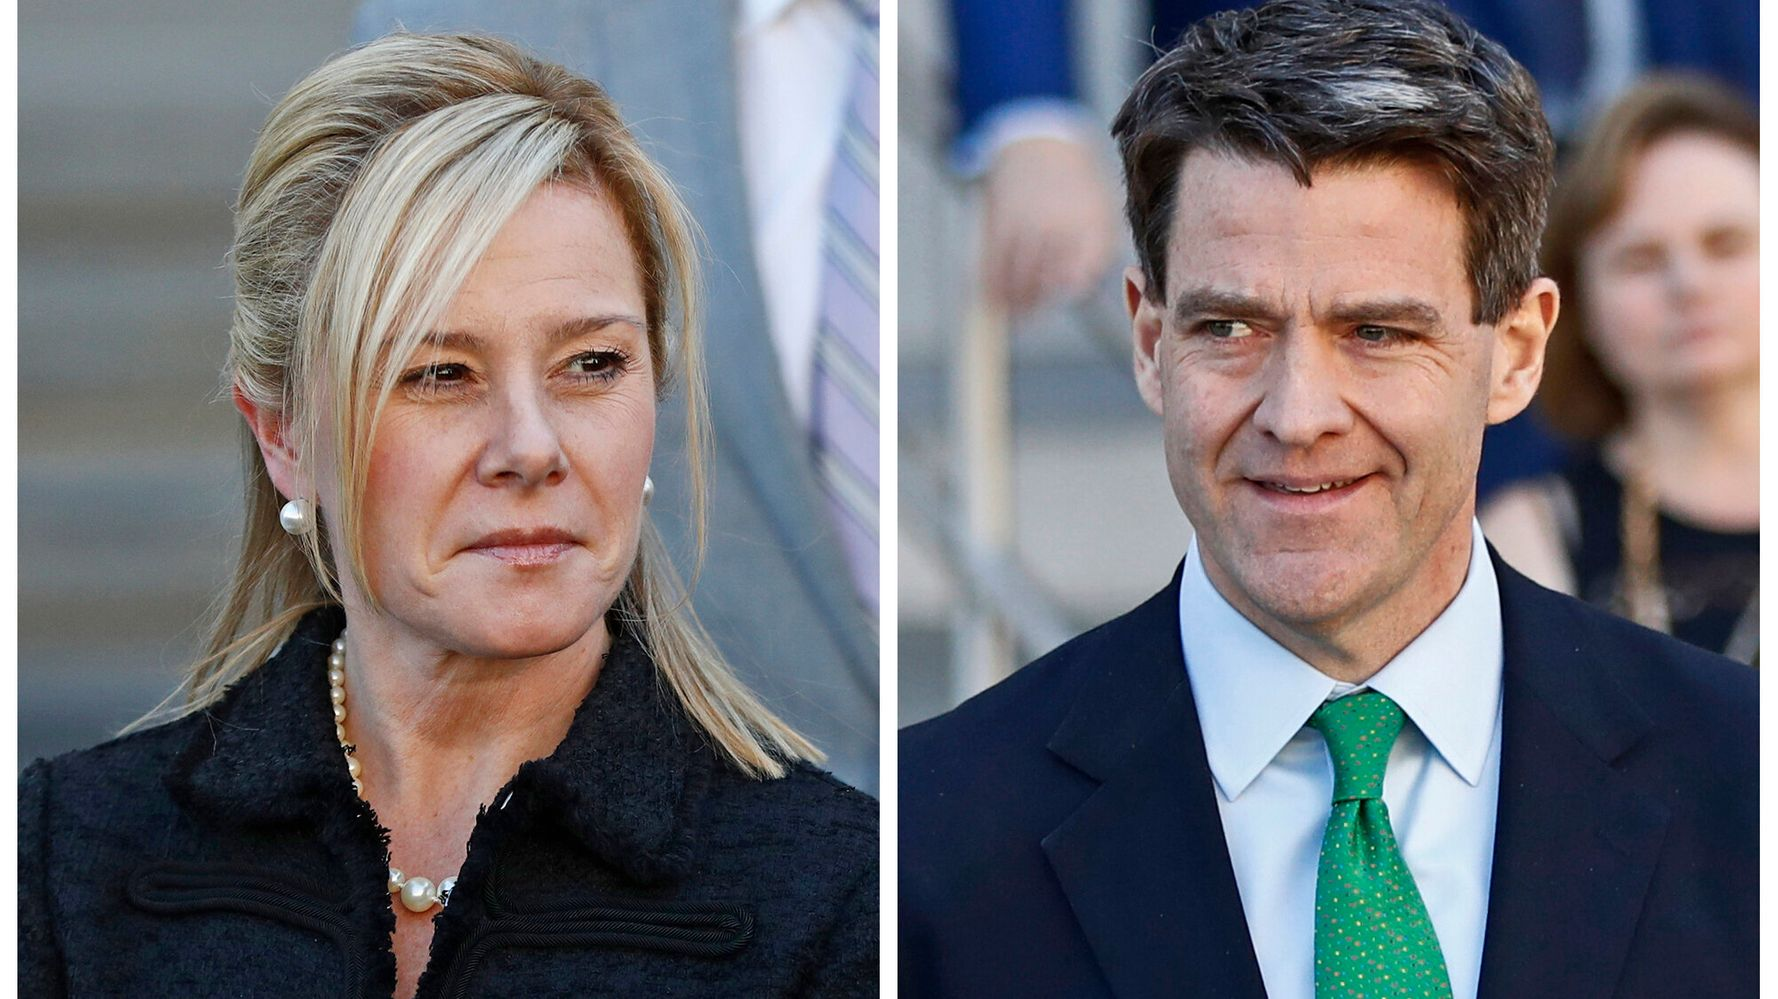 U.S. Supreme Court Overturns New Jersey 'Bridgegate' Scandal Convictions